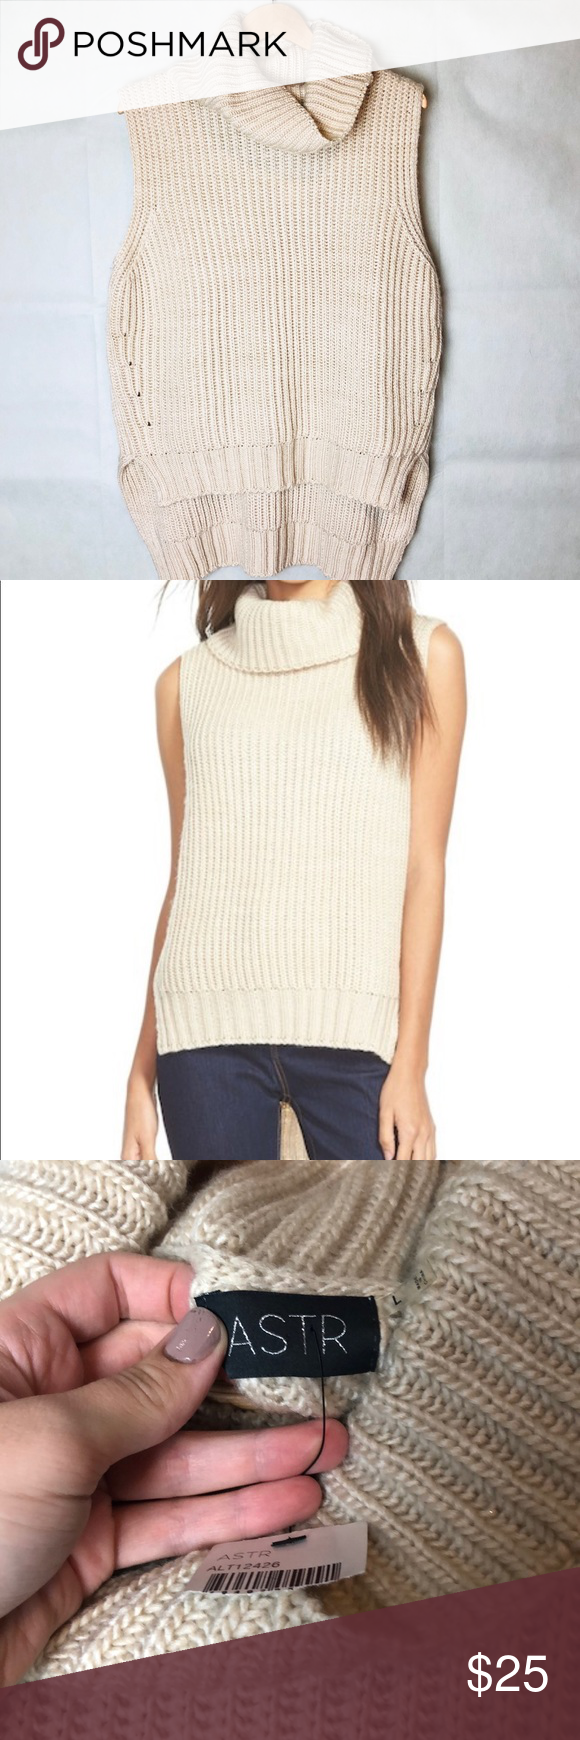 e4ae49a55d141 ASTR   Nordstrom Sleeveless Turtleneck Sweater NWT from ASTR The Brand,  sold in Nordstrom. Soft, chunky knit high low style sleeveless turtleneck.